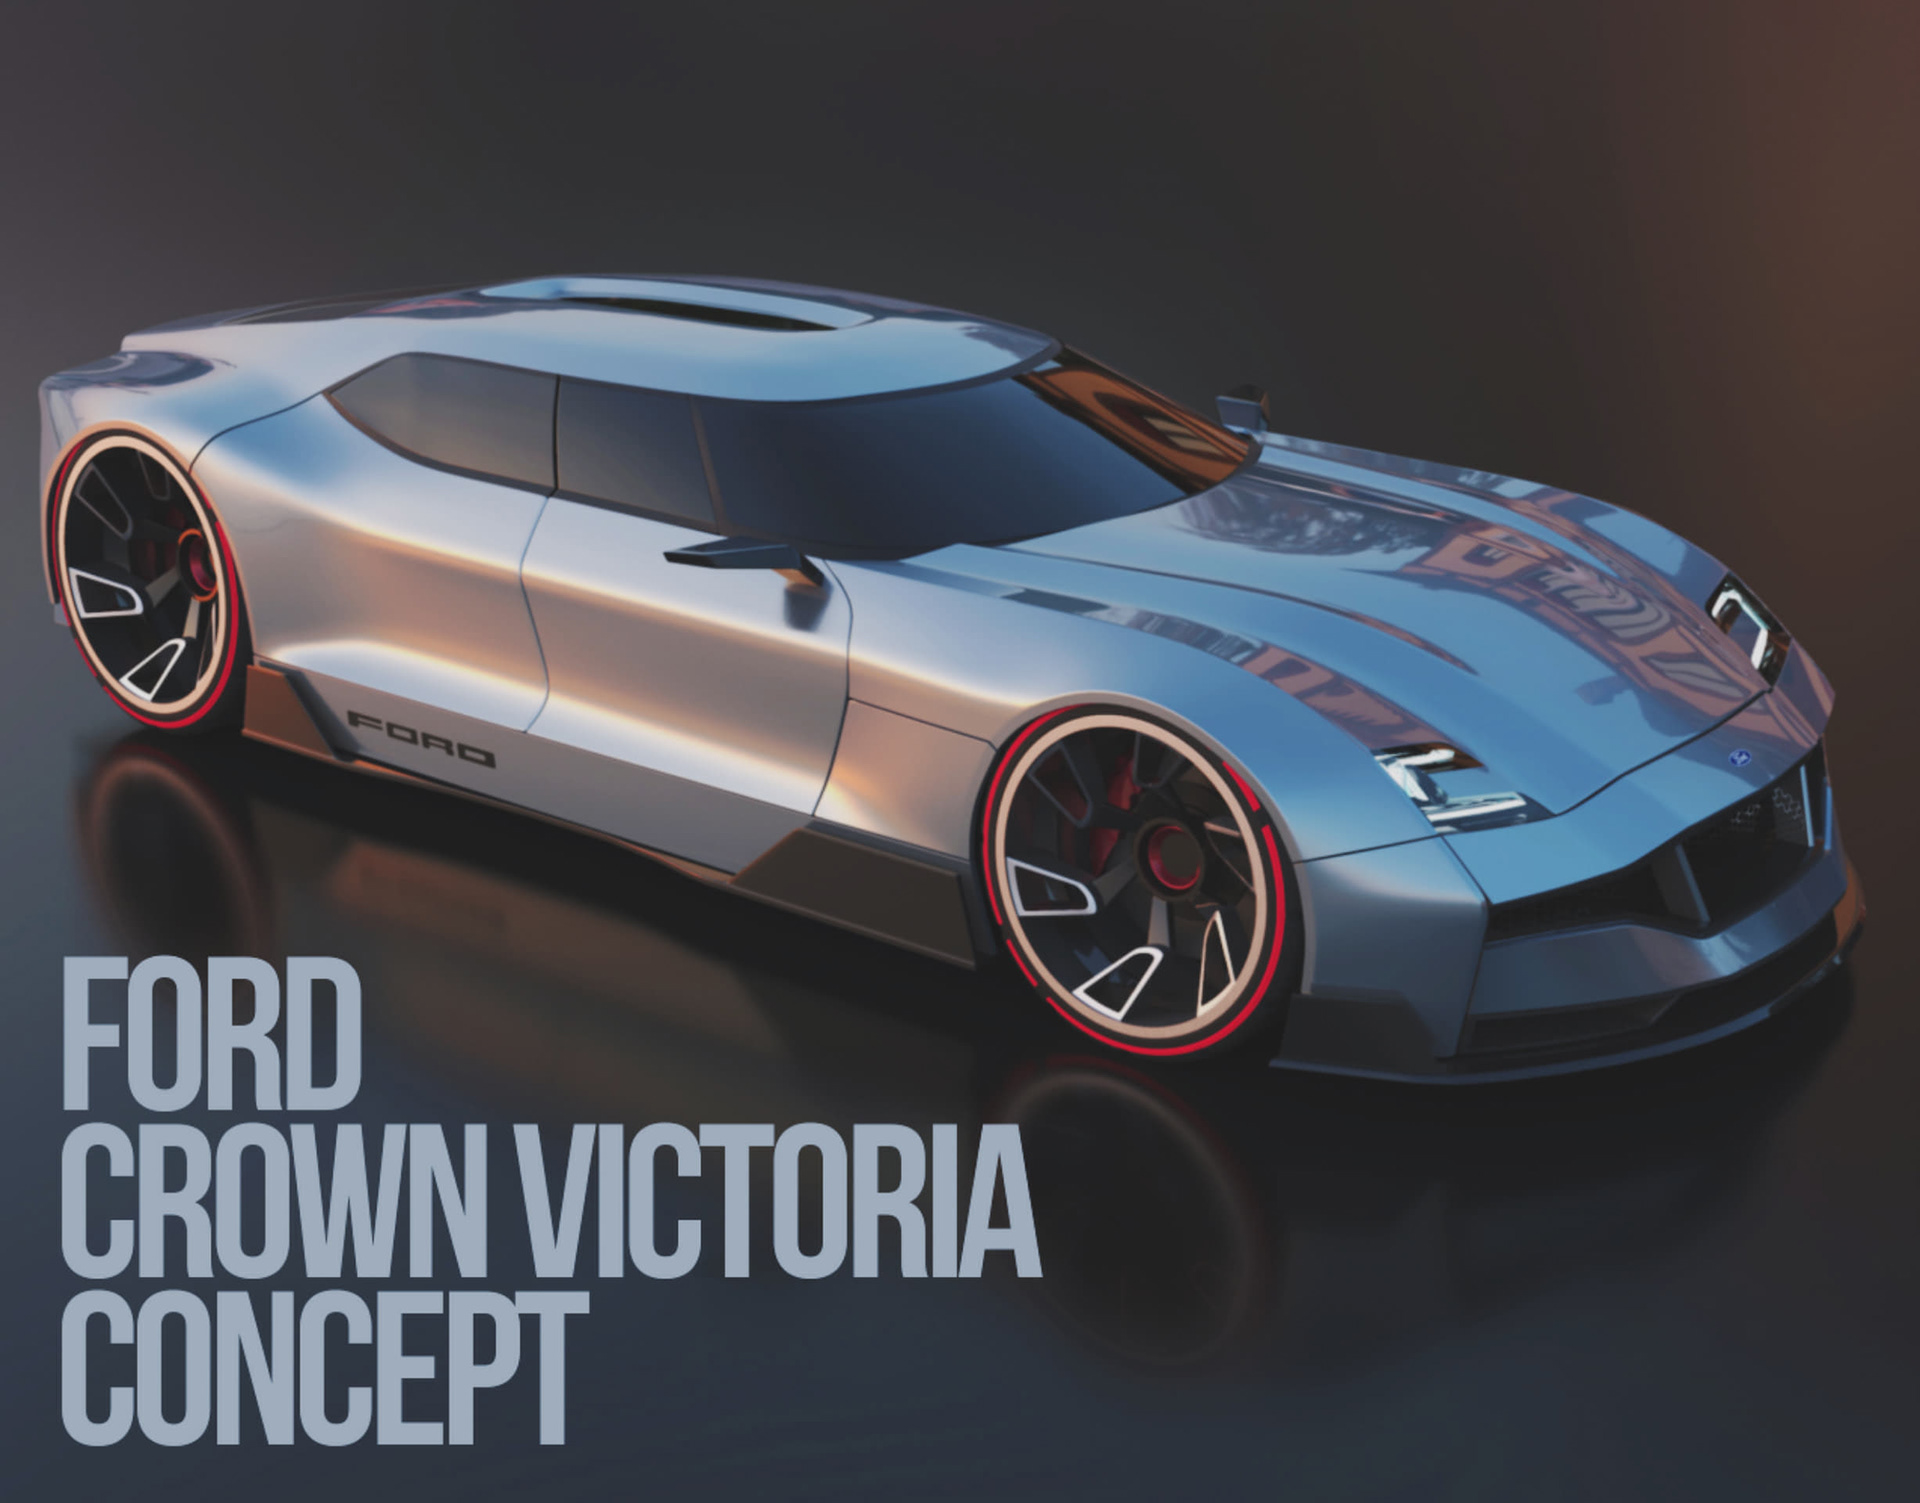 2025 Ford Crown Victoria Concept Carmojo Ford S Love For Suvs